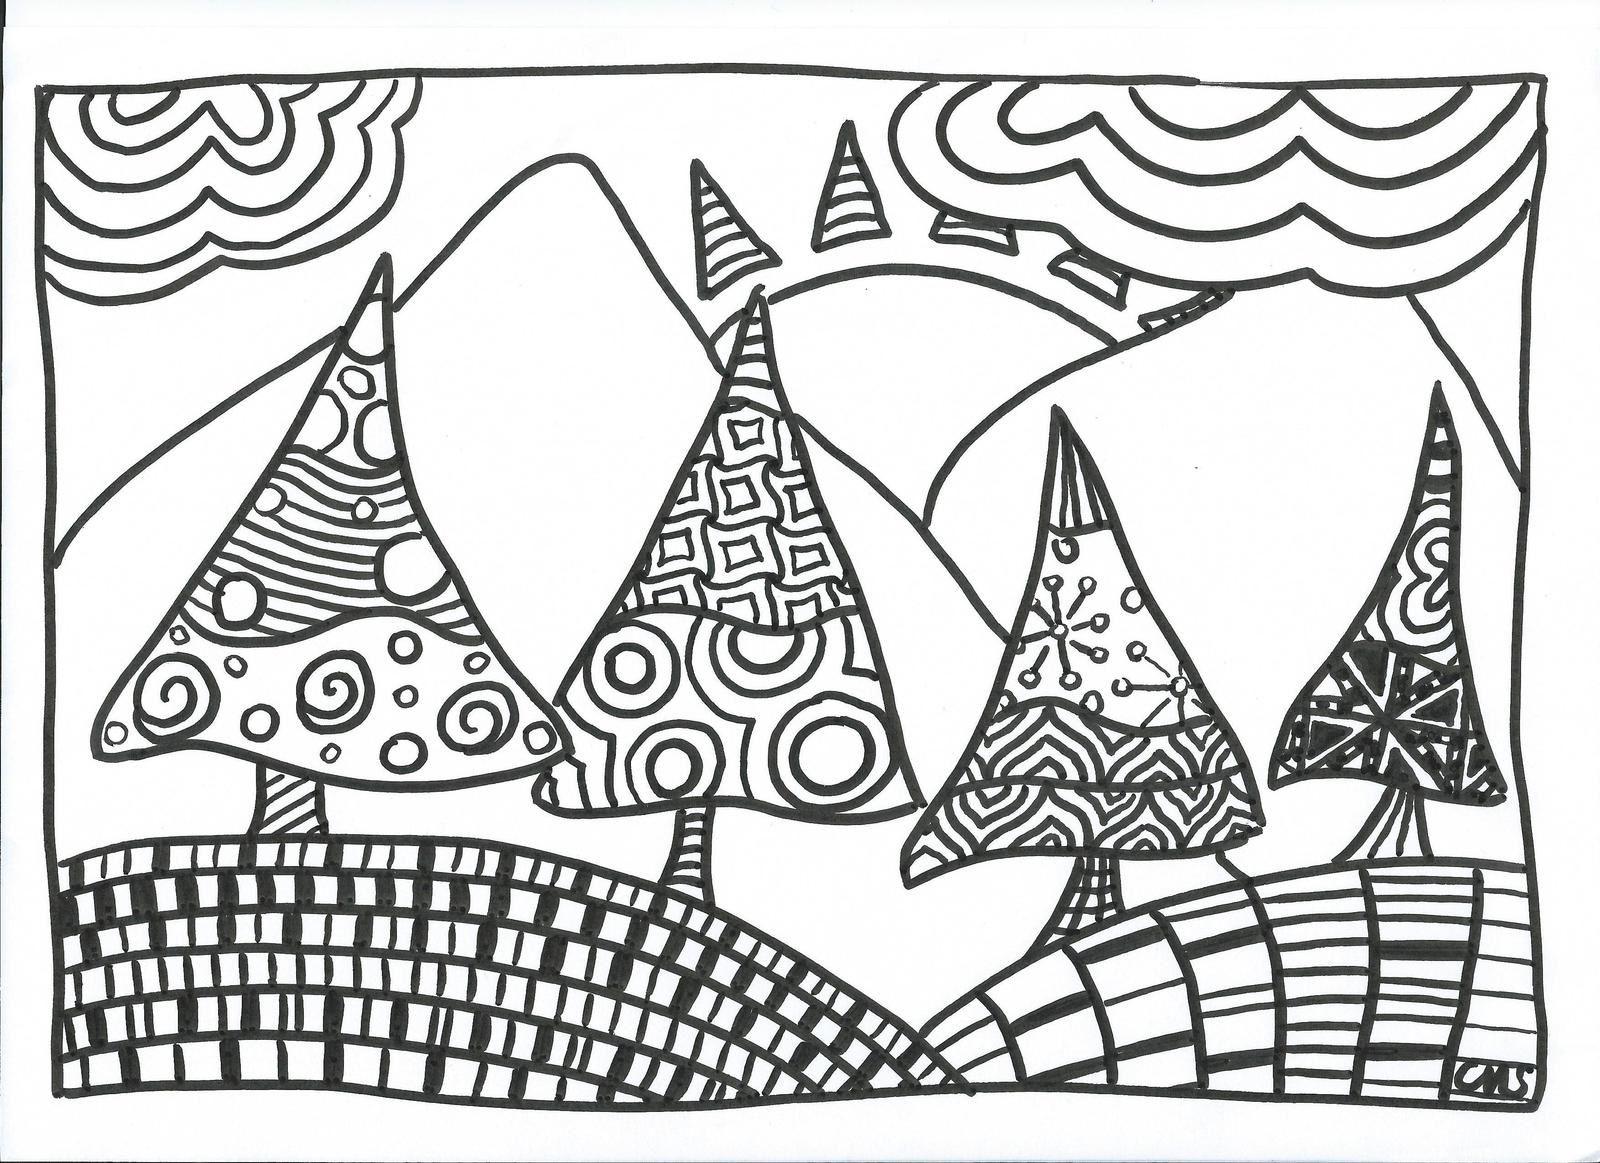 Christmas Coloring Pages, Christmas Arts, Crafts, Christmas Colors